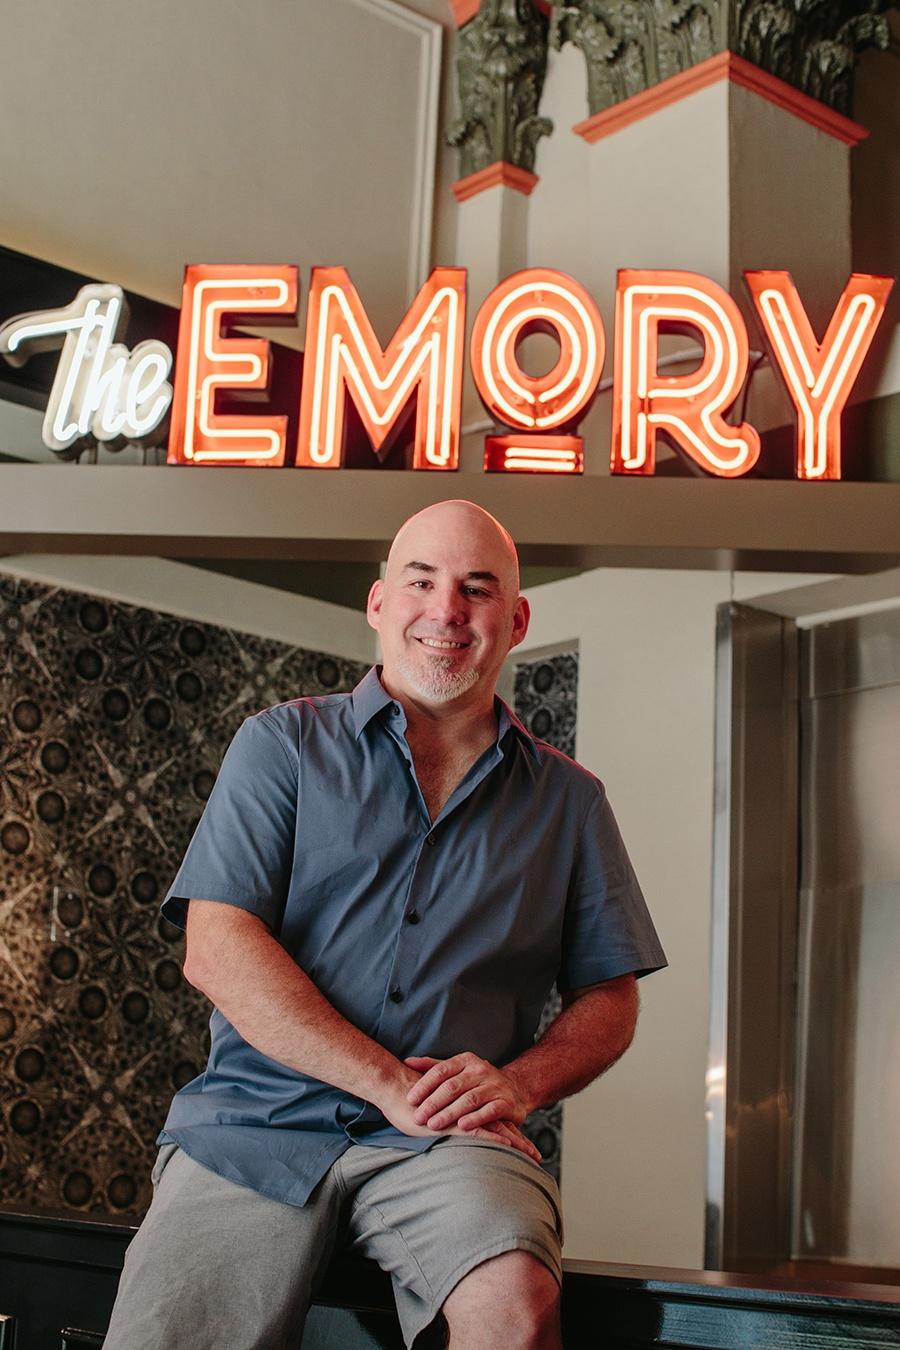 The Emory owner Andy Kilgore